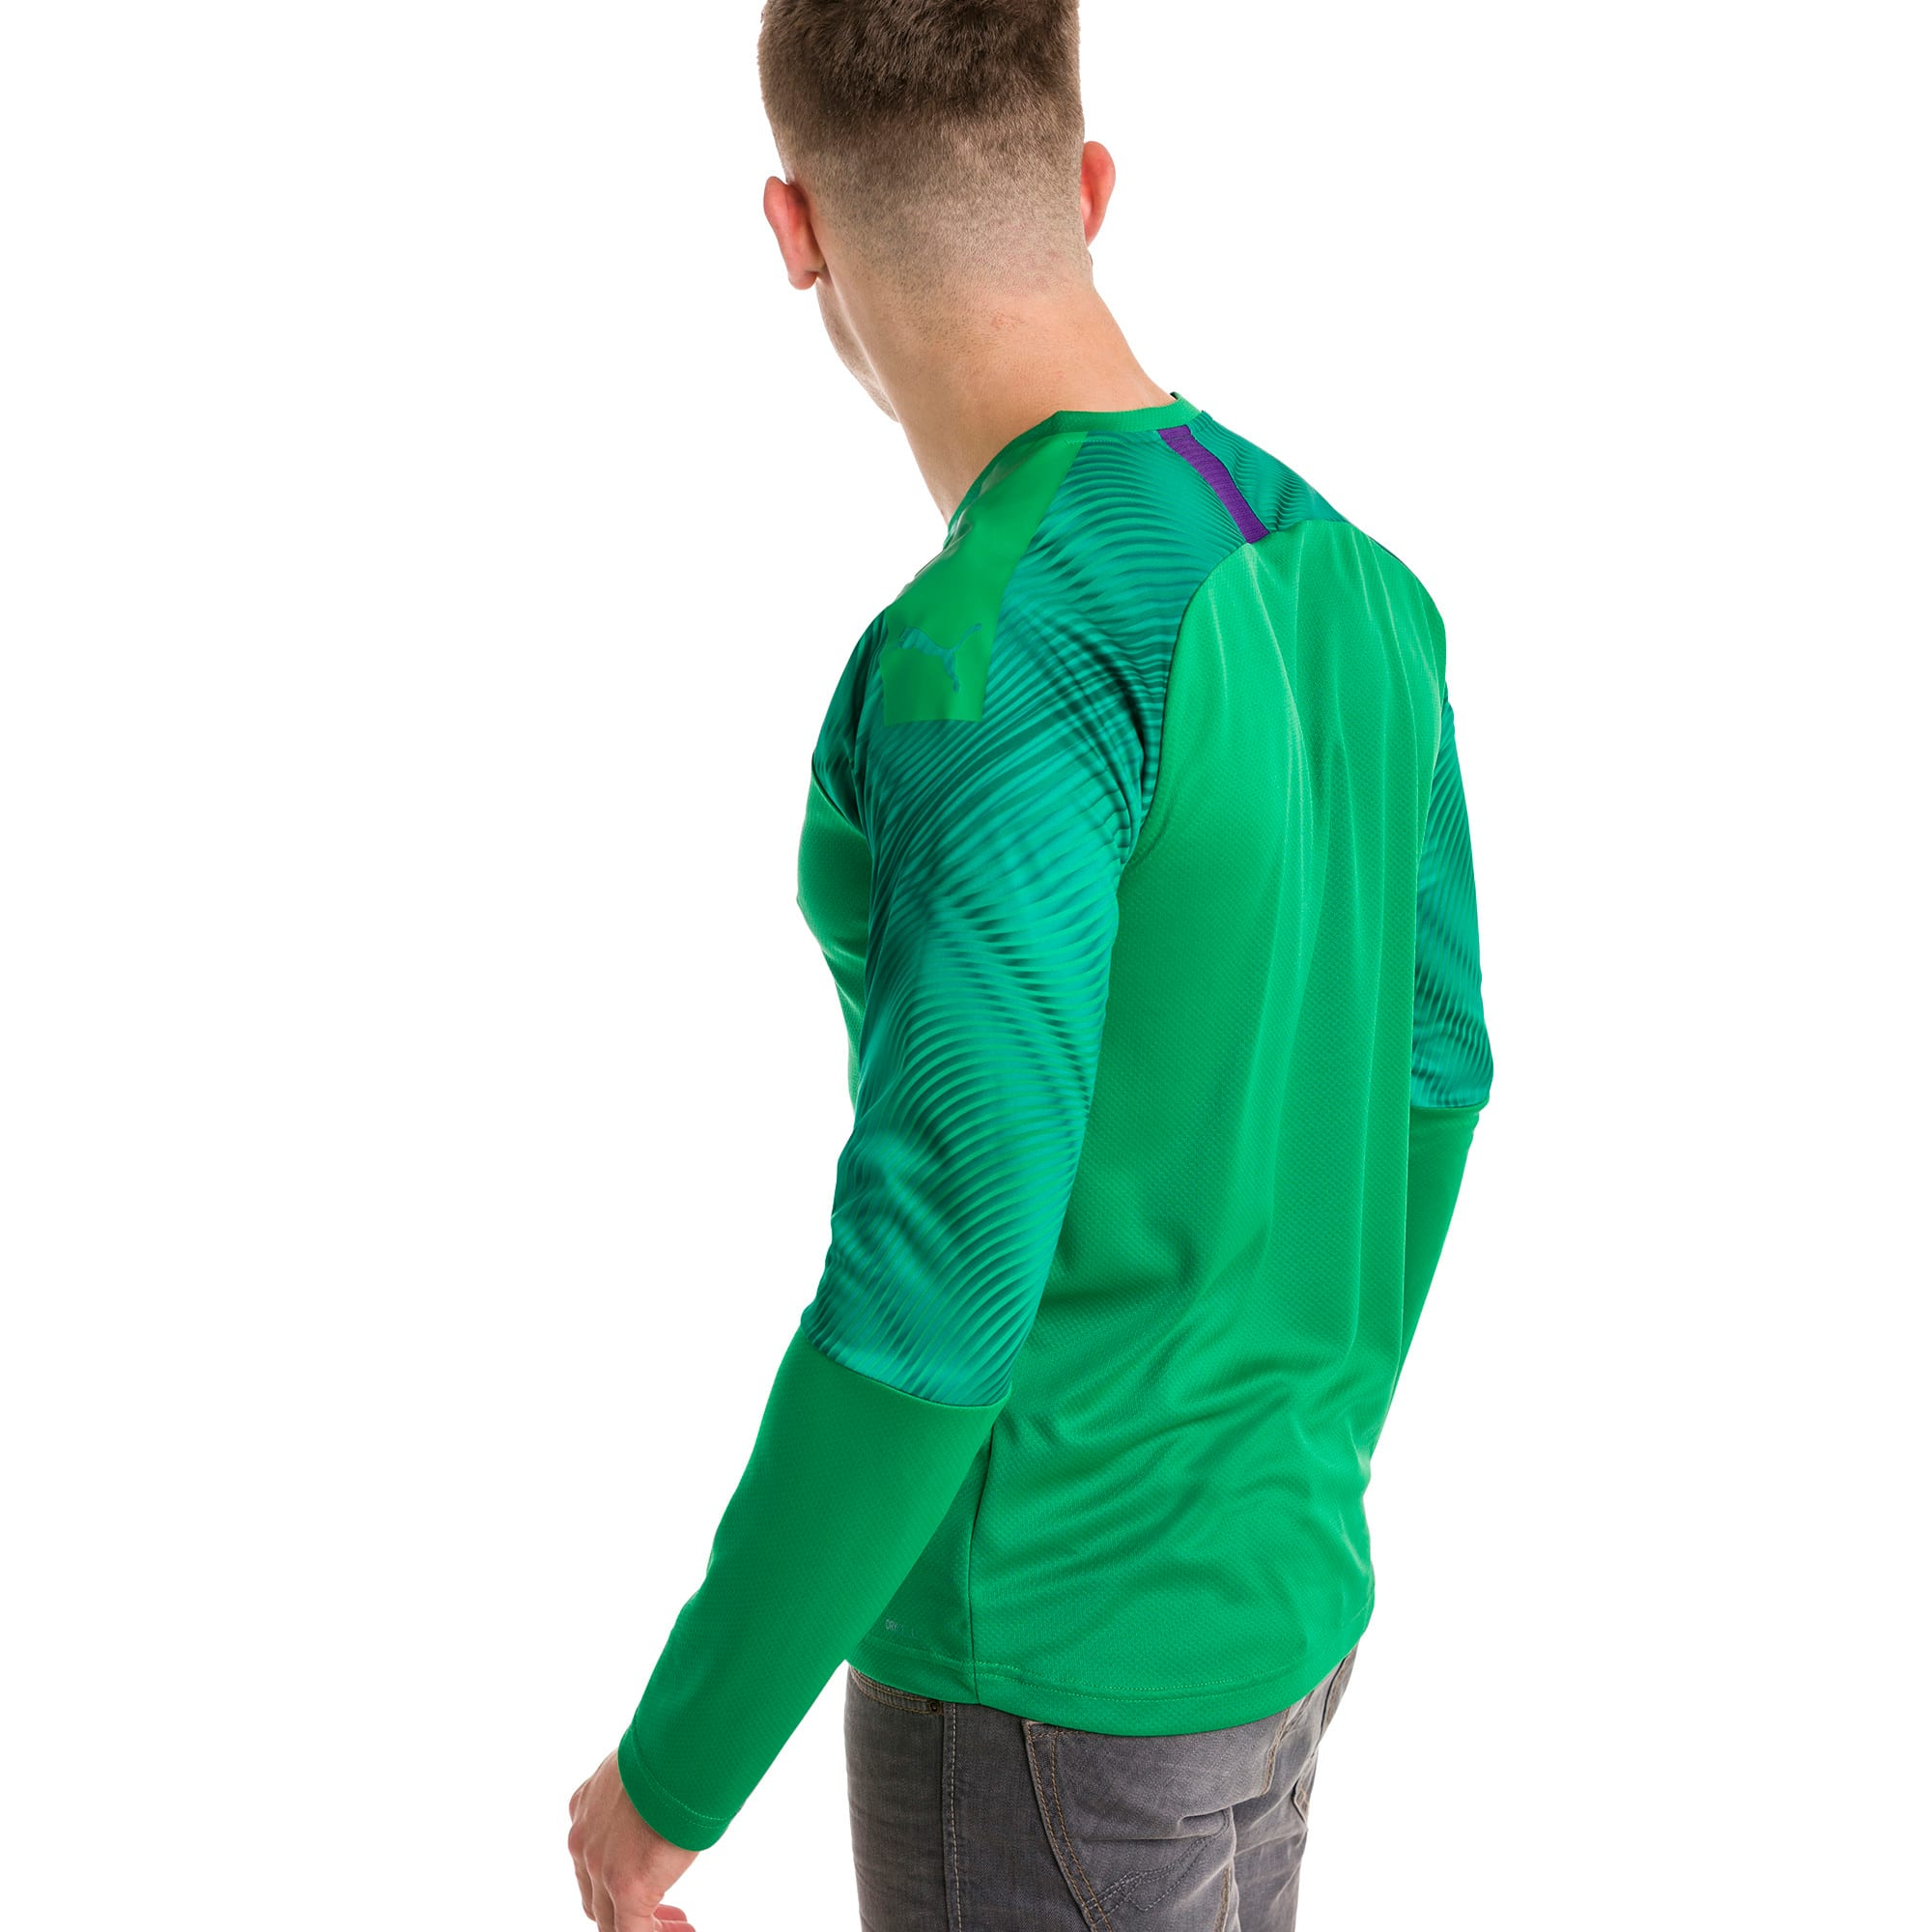 Thumbnail 2 of CUP Long Sleeve Men's Goalkeeper Jersey, Bright Green-Prism Violet, medium